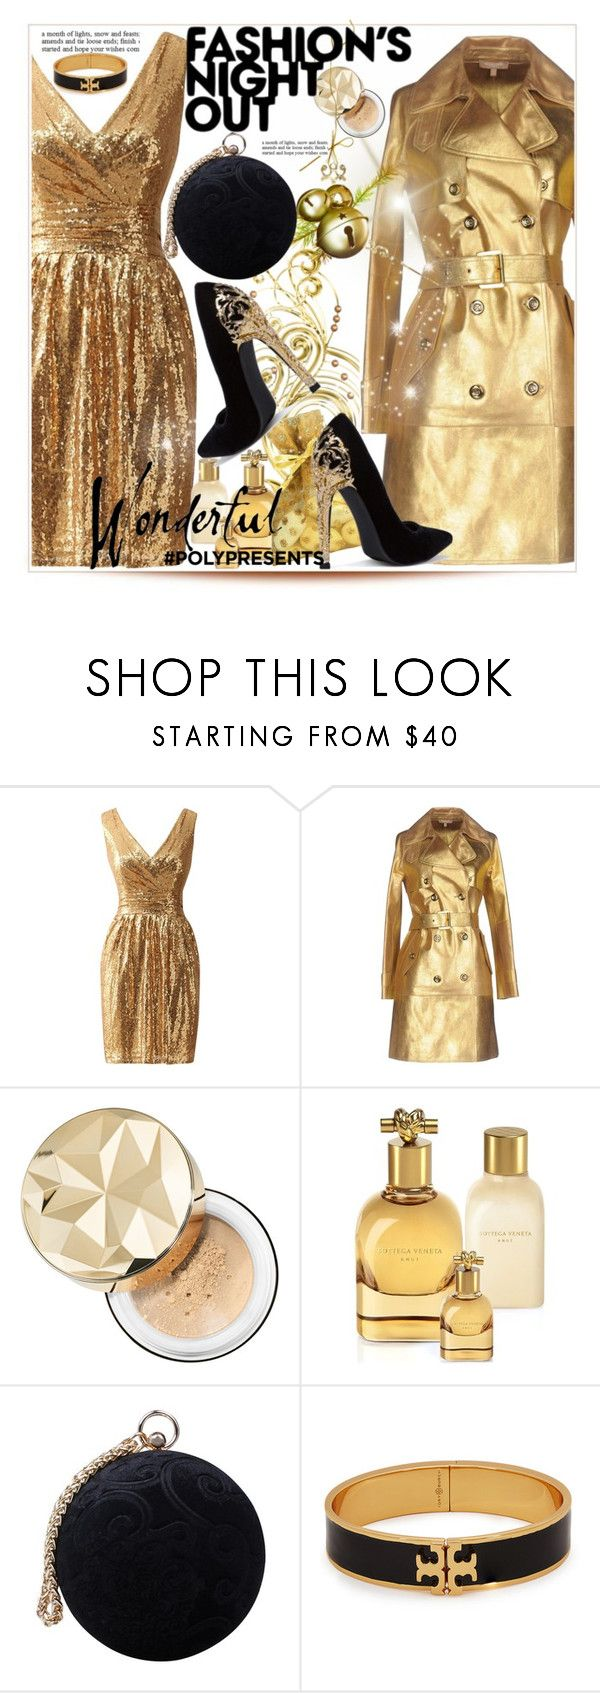 """""""#PolyPresents: Wish List"""" by selmir ❤ liked on Polyvore featuring Lara, Michael Kors, Bare Escentuals, Bottega Veneta, Carvela, Fashion's Night Out and Tory Burch"""